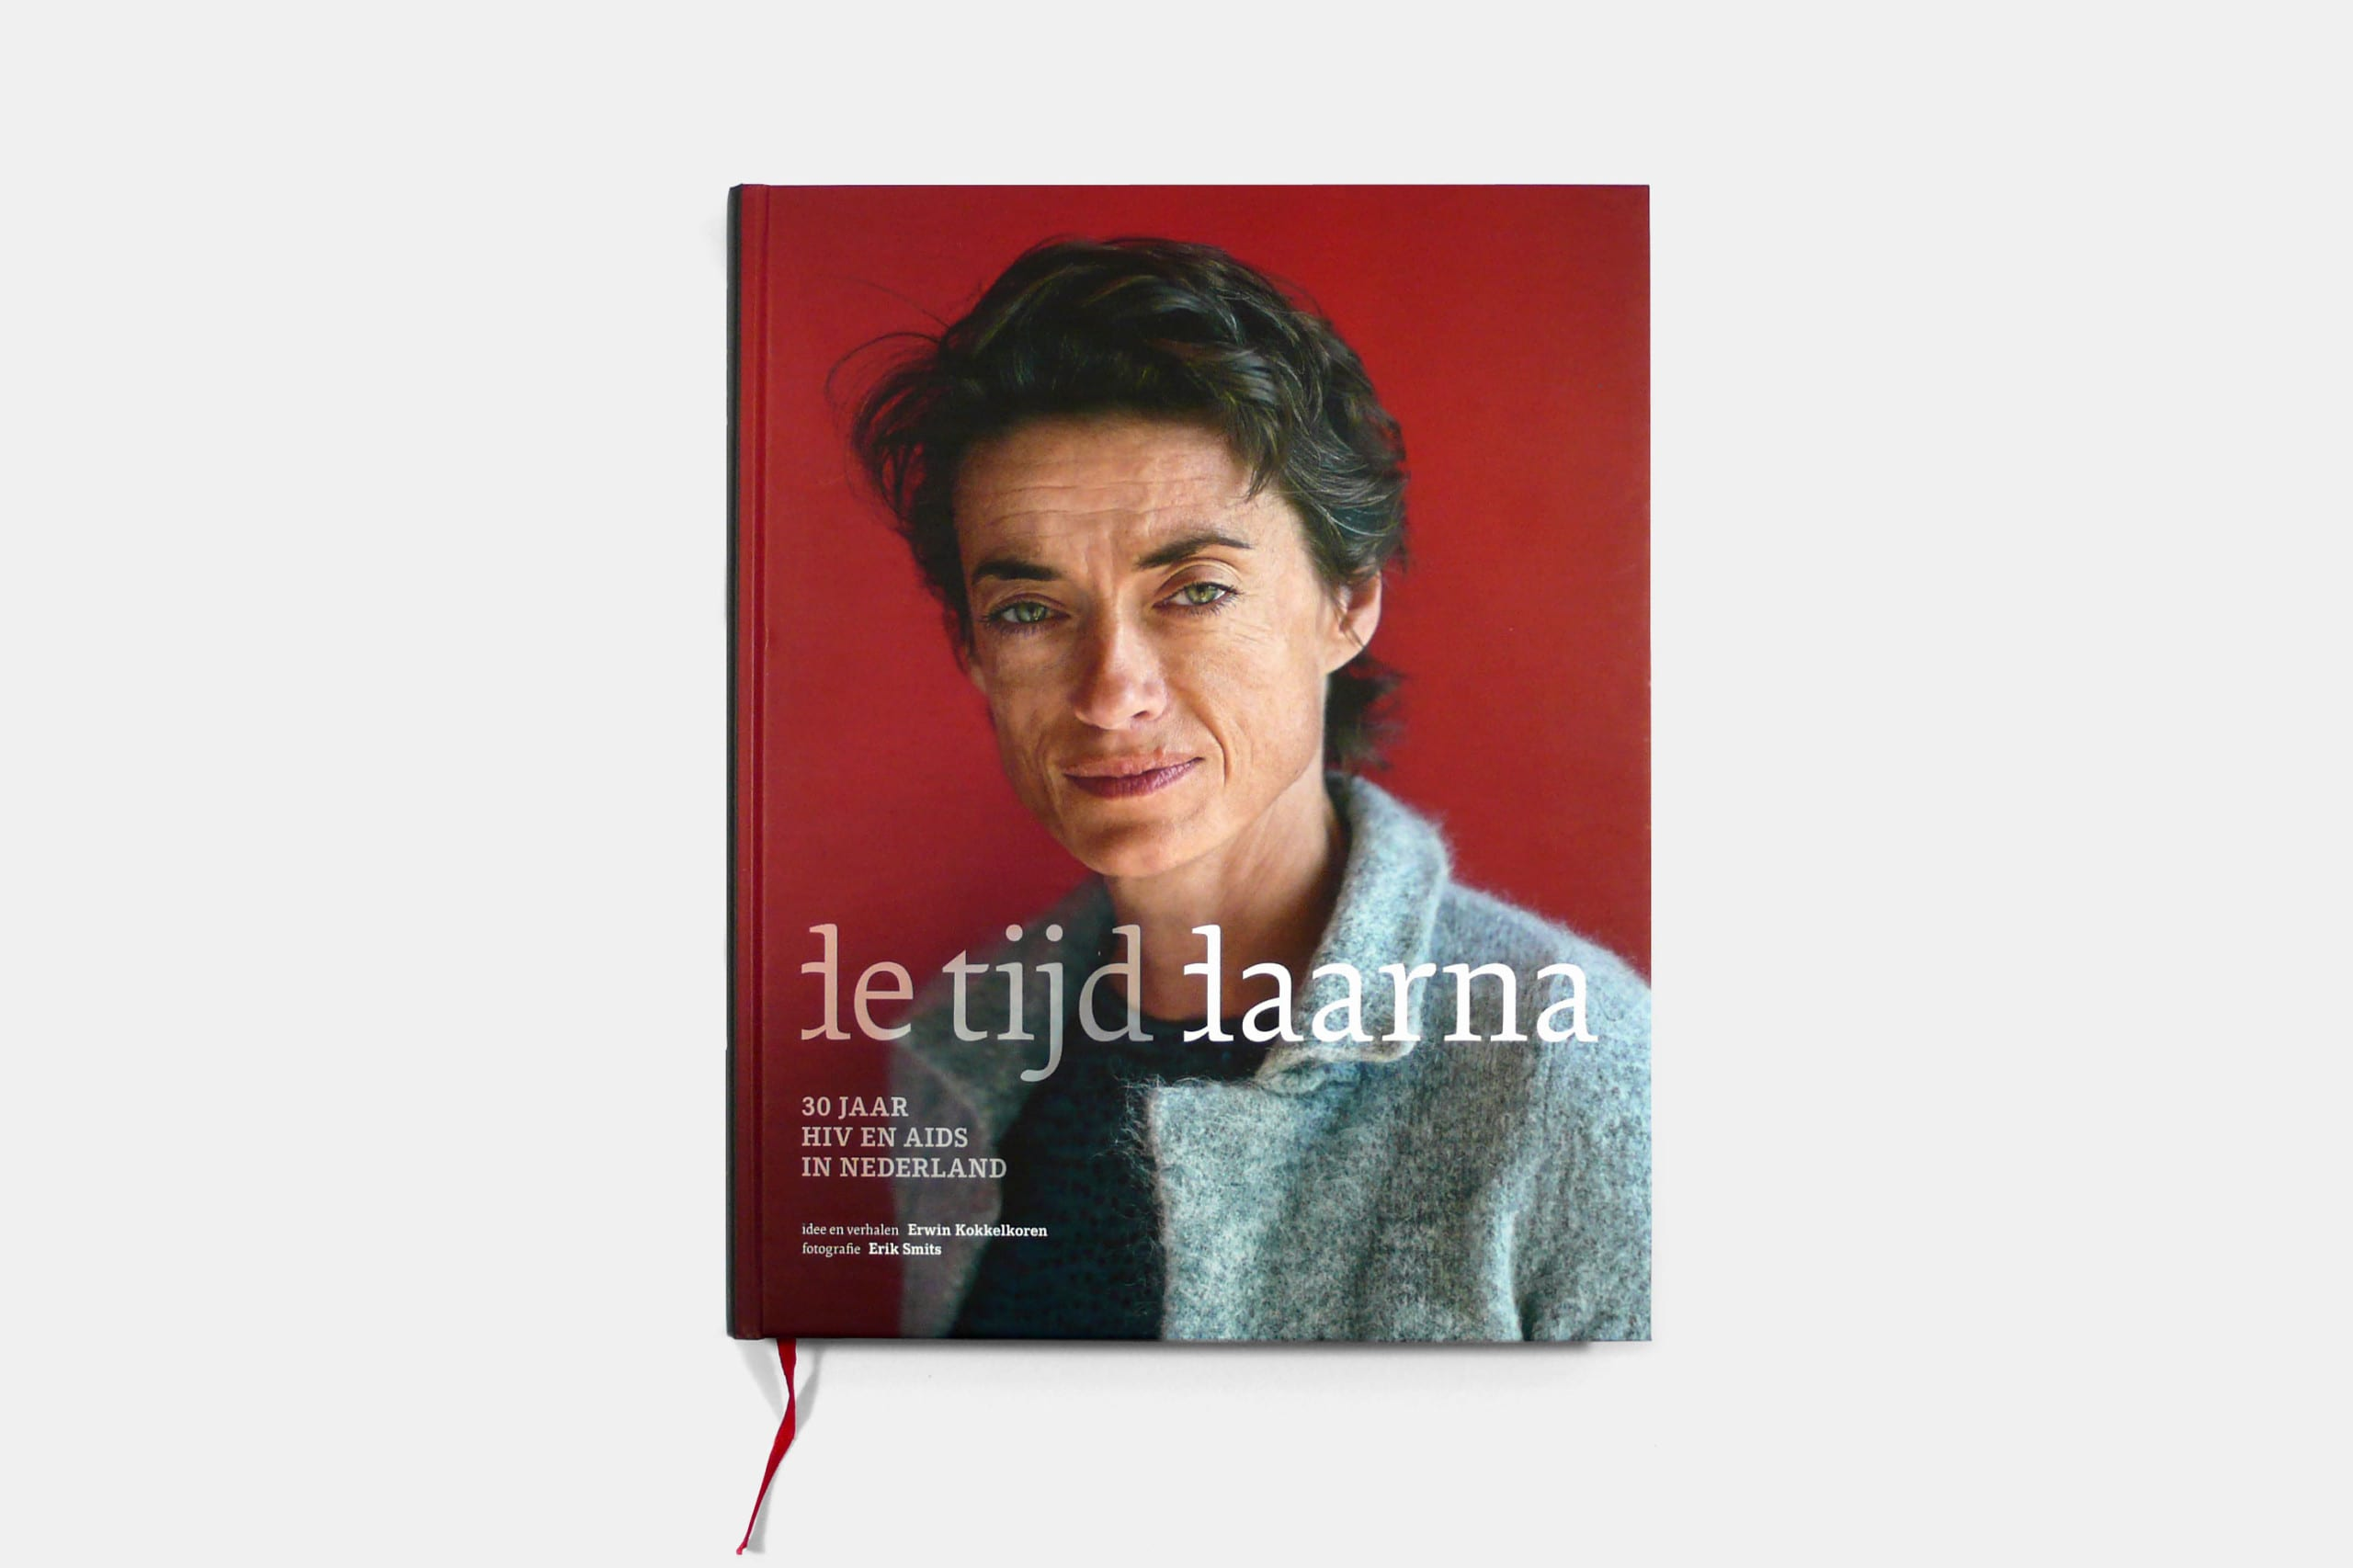 Gebr. Silvestri Les enfants terribles  – 'De tijd daarna: 30 jaar Hiv and Aids in Nederland'